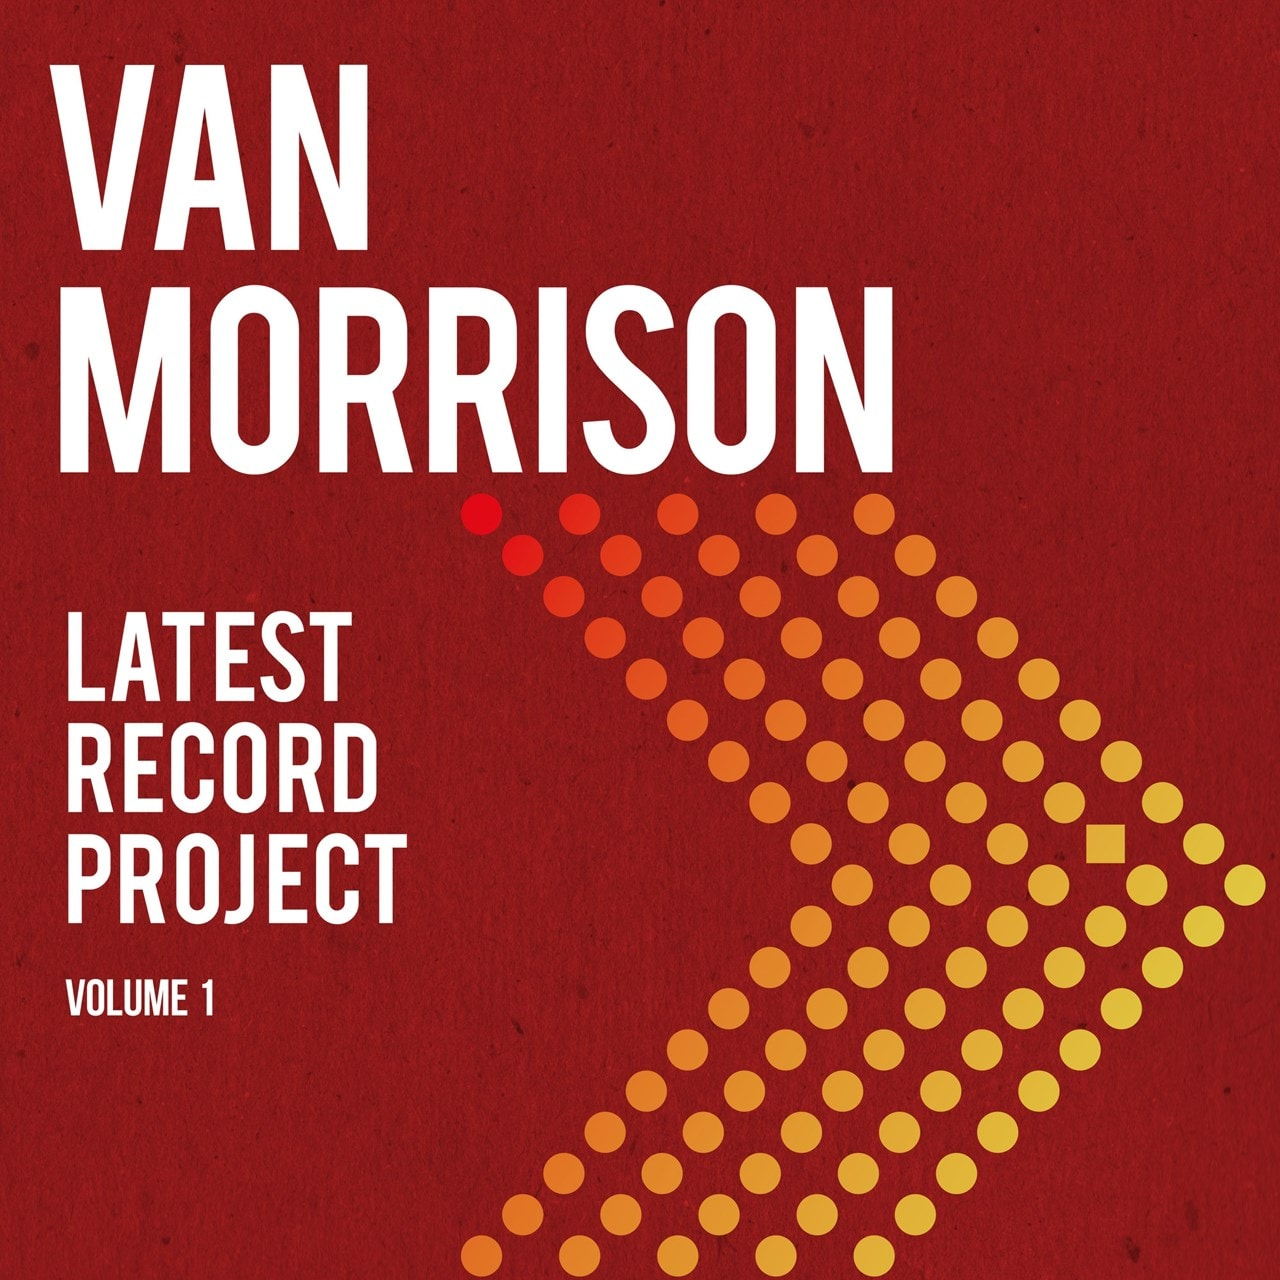 Latest Record Project - Volume 1 - 1